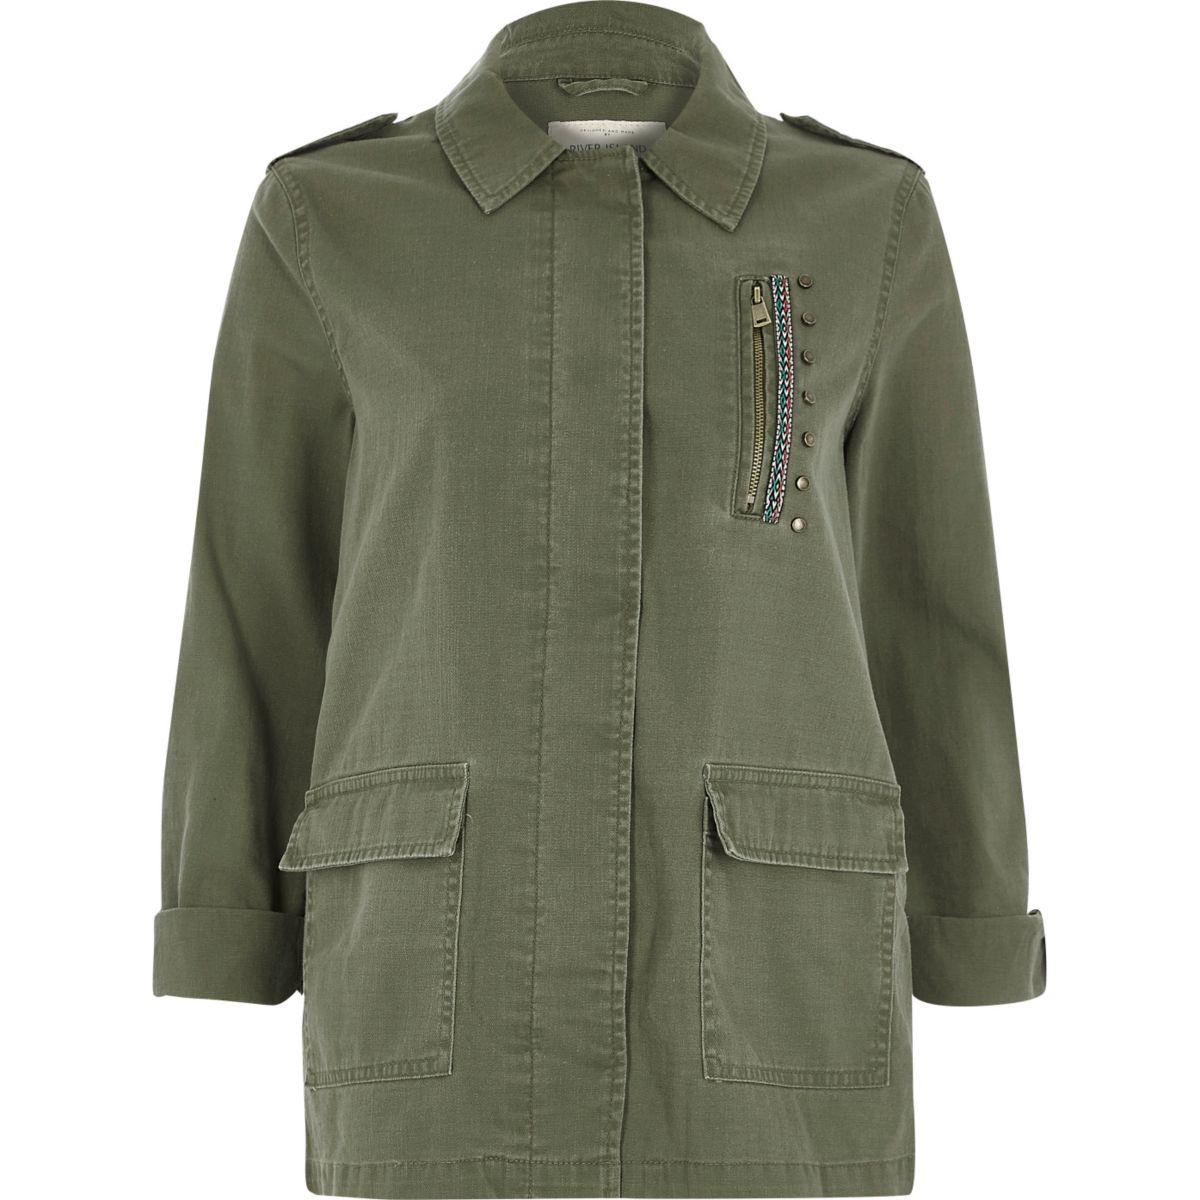 lyst river island khaki green patch back army jacket in green. Black Bedroom Furniture Sets. Home Design Ideas